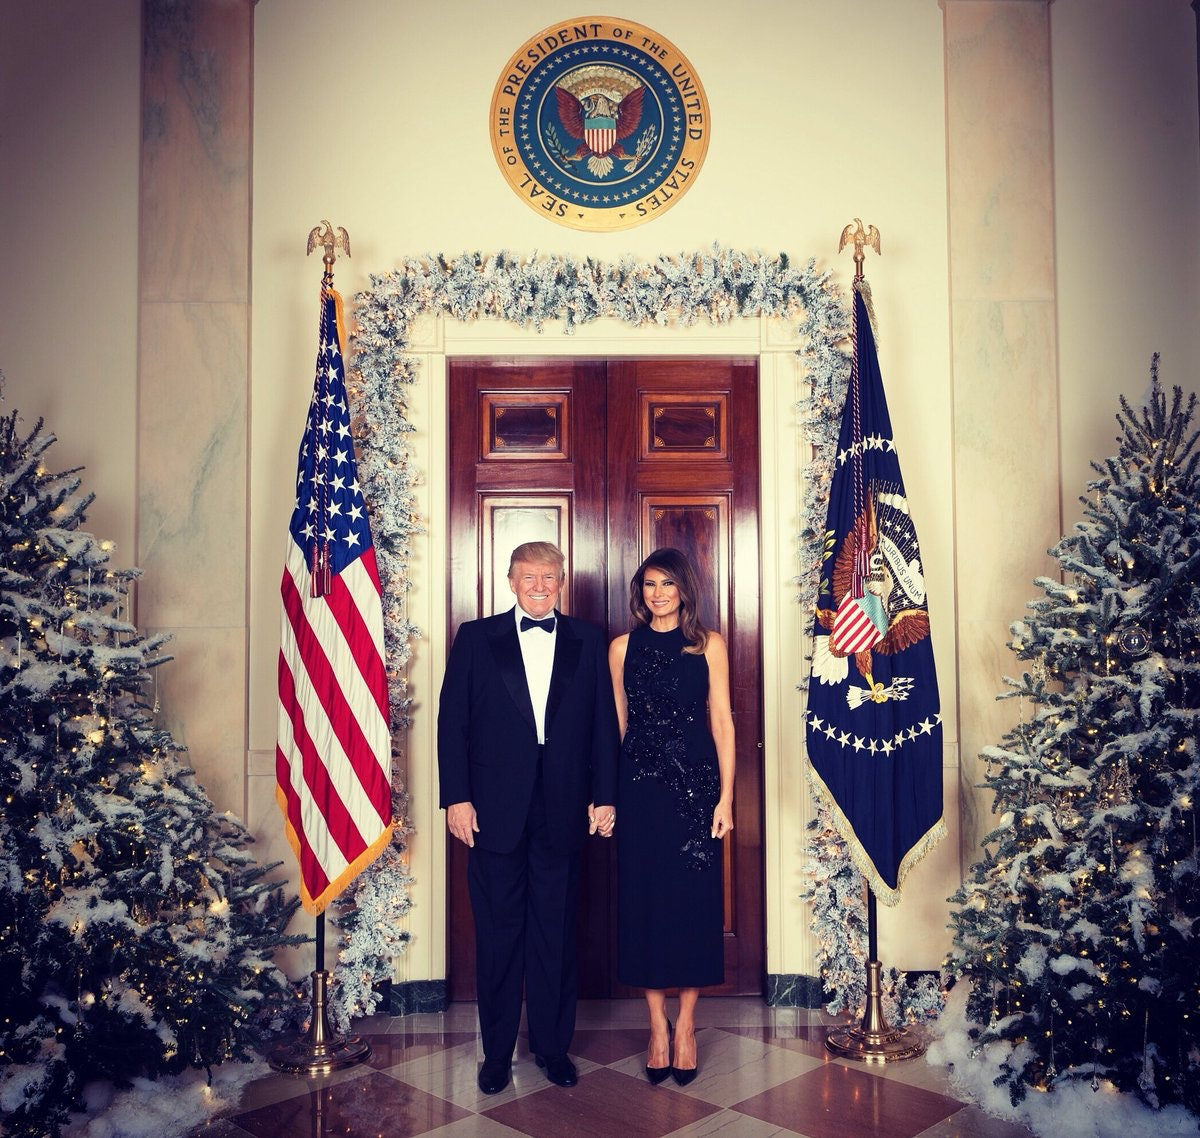 The White House just released the Trump family's first official Christmas portrait